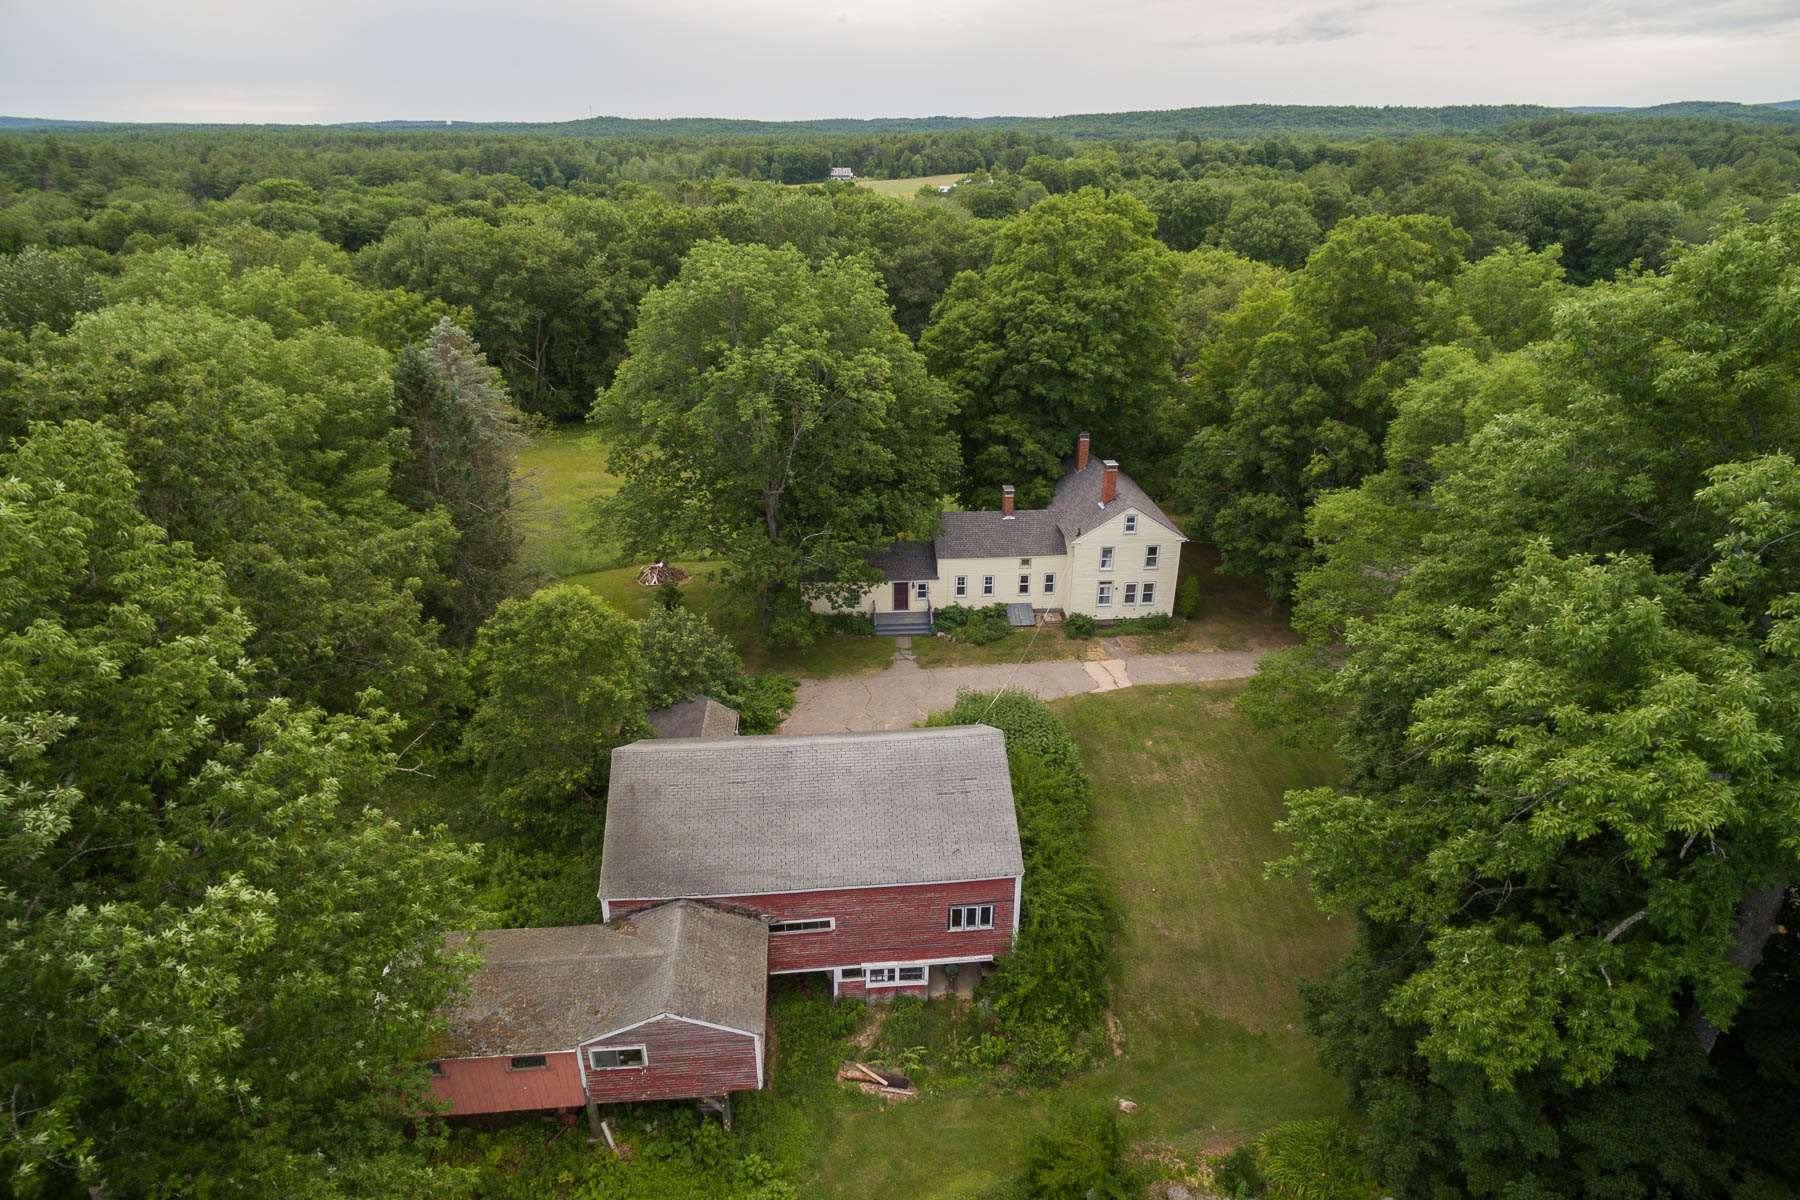 289 Kennebunk Rd, Alfred, ME 04002